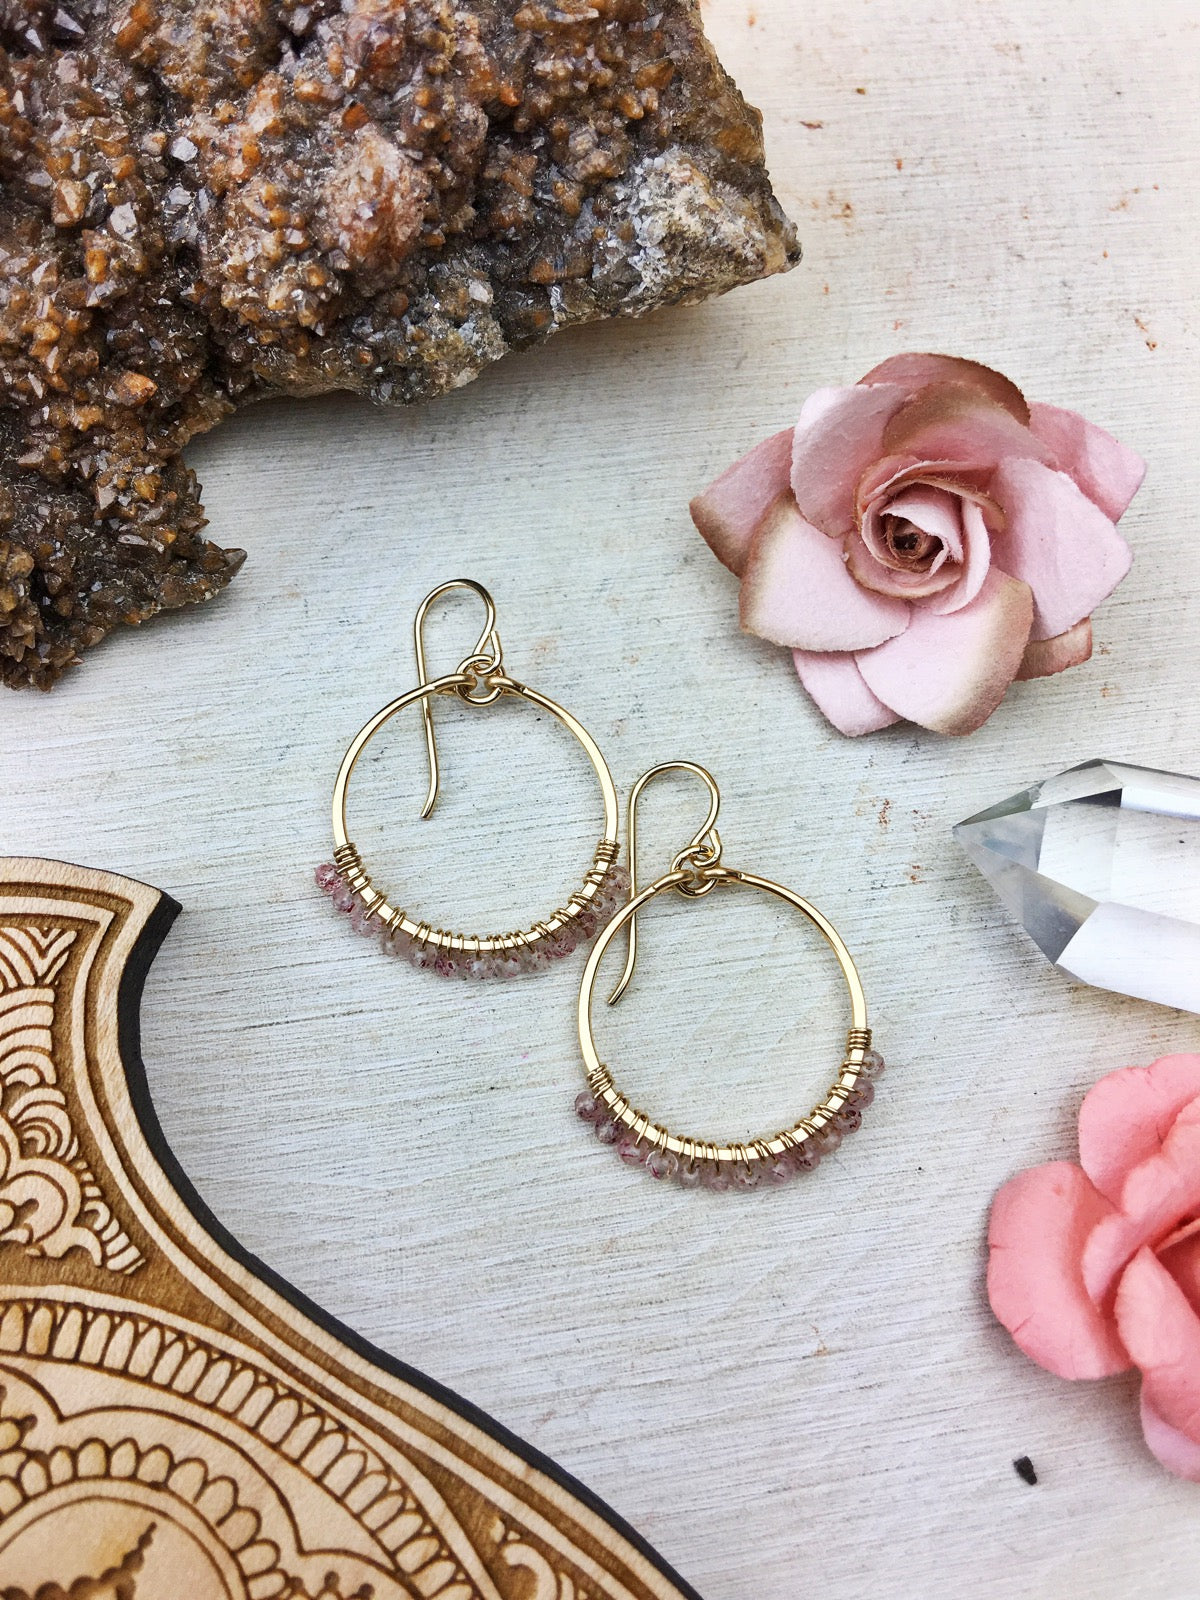 Ophelia's Hoop Earrings - Strawberry Quartz Gemstones 14k Gold Filled